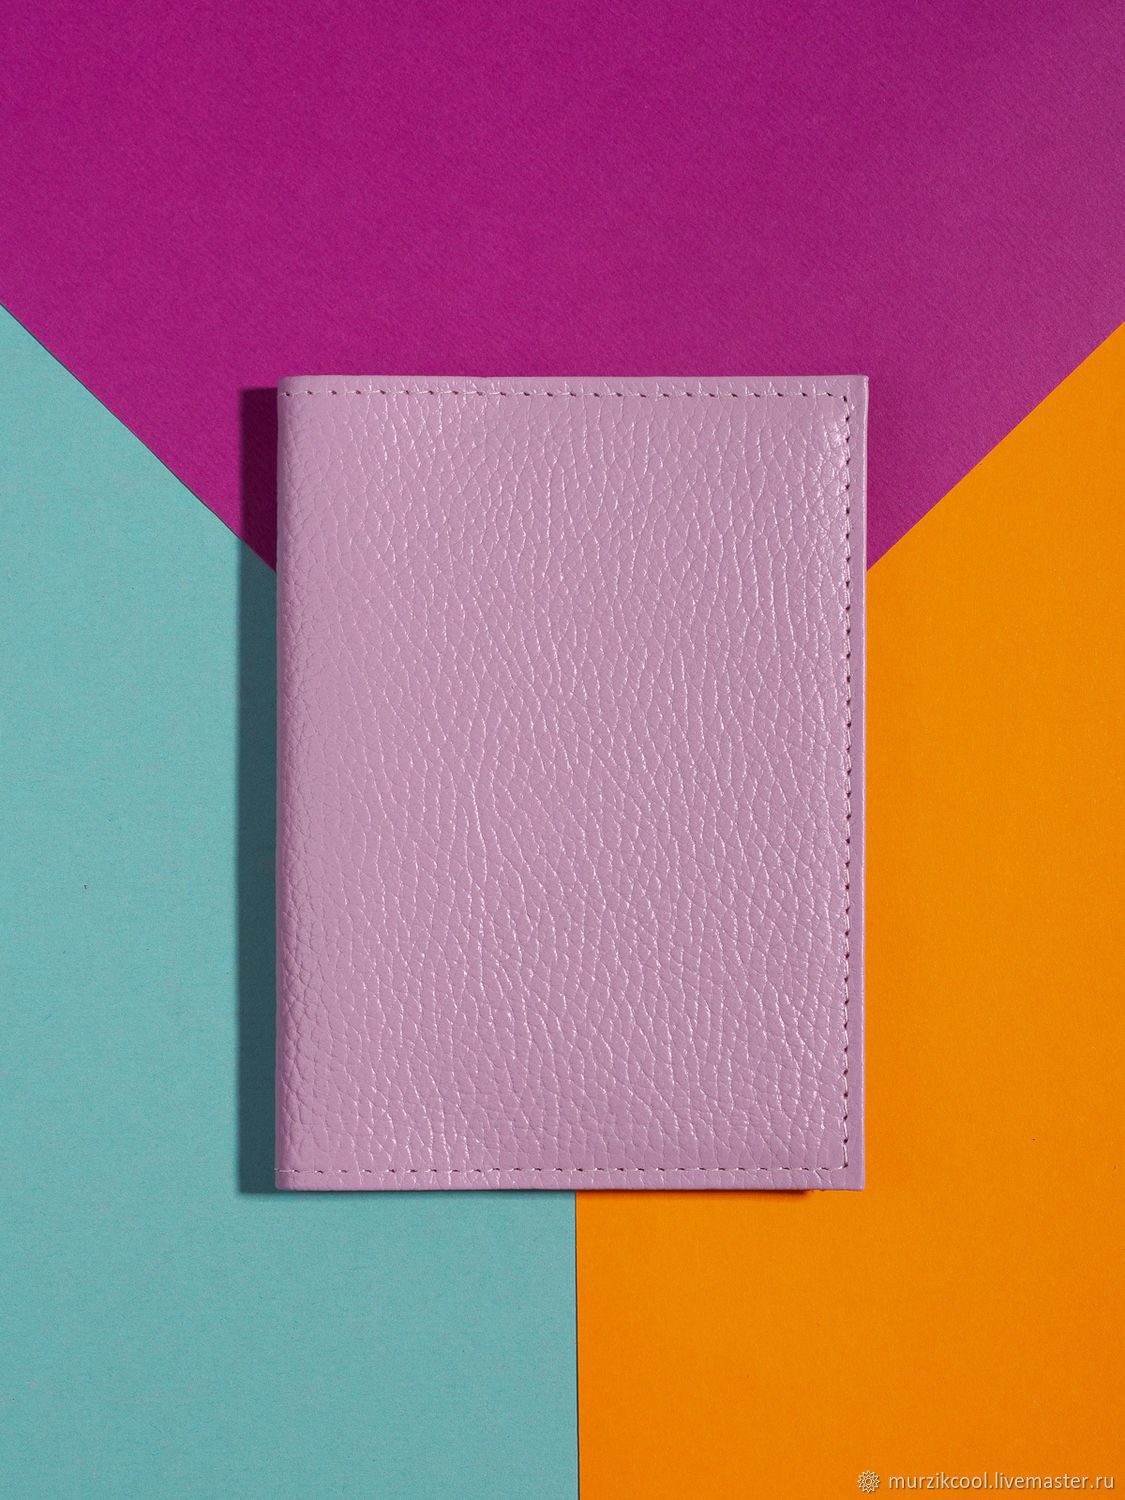 Passport cover 'Classic' Light purple, Cover, Moscow,  Фото №1